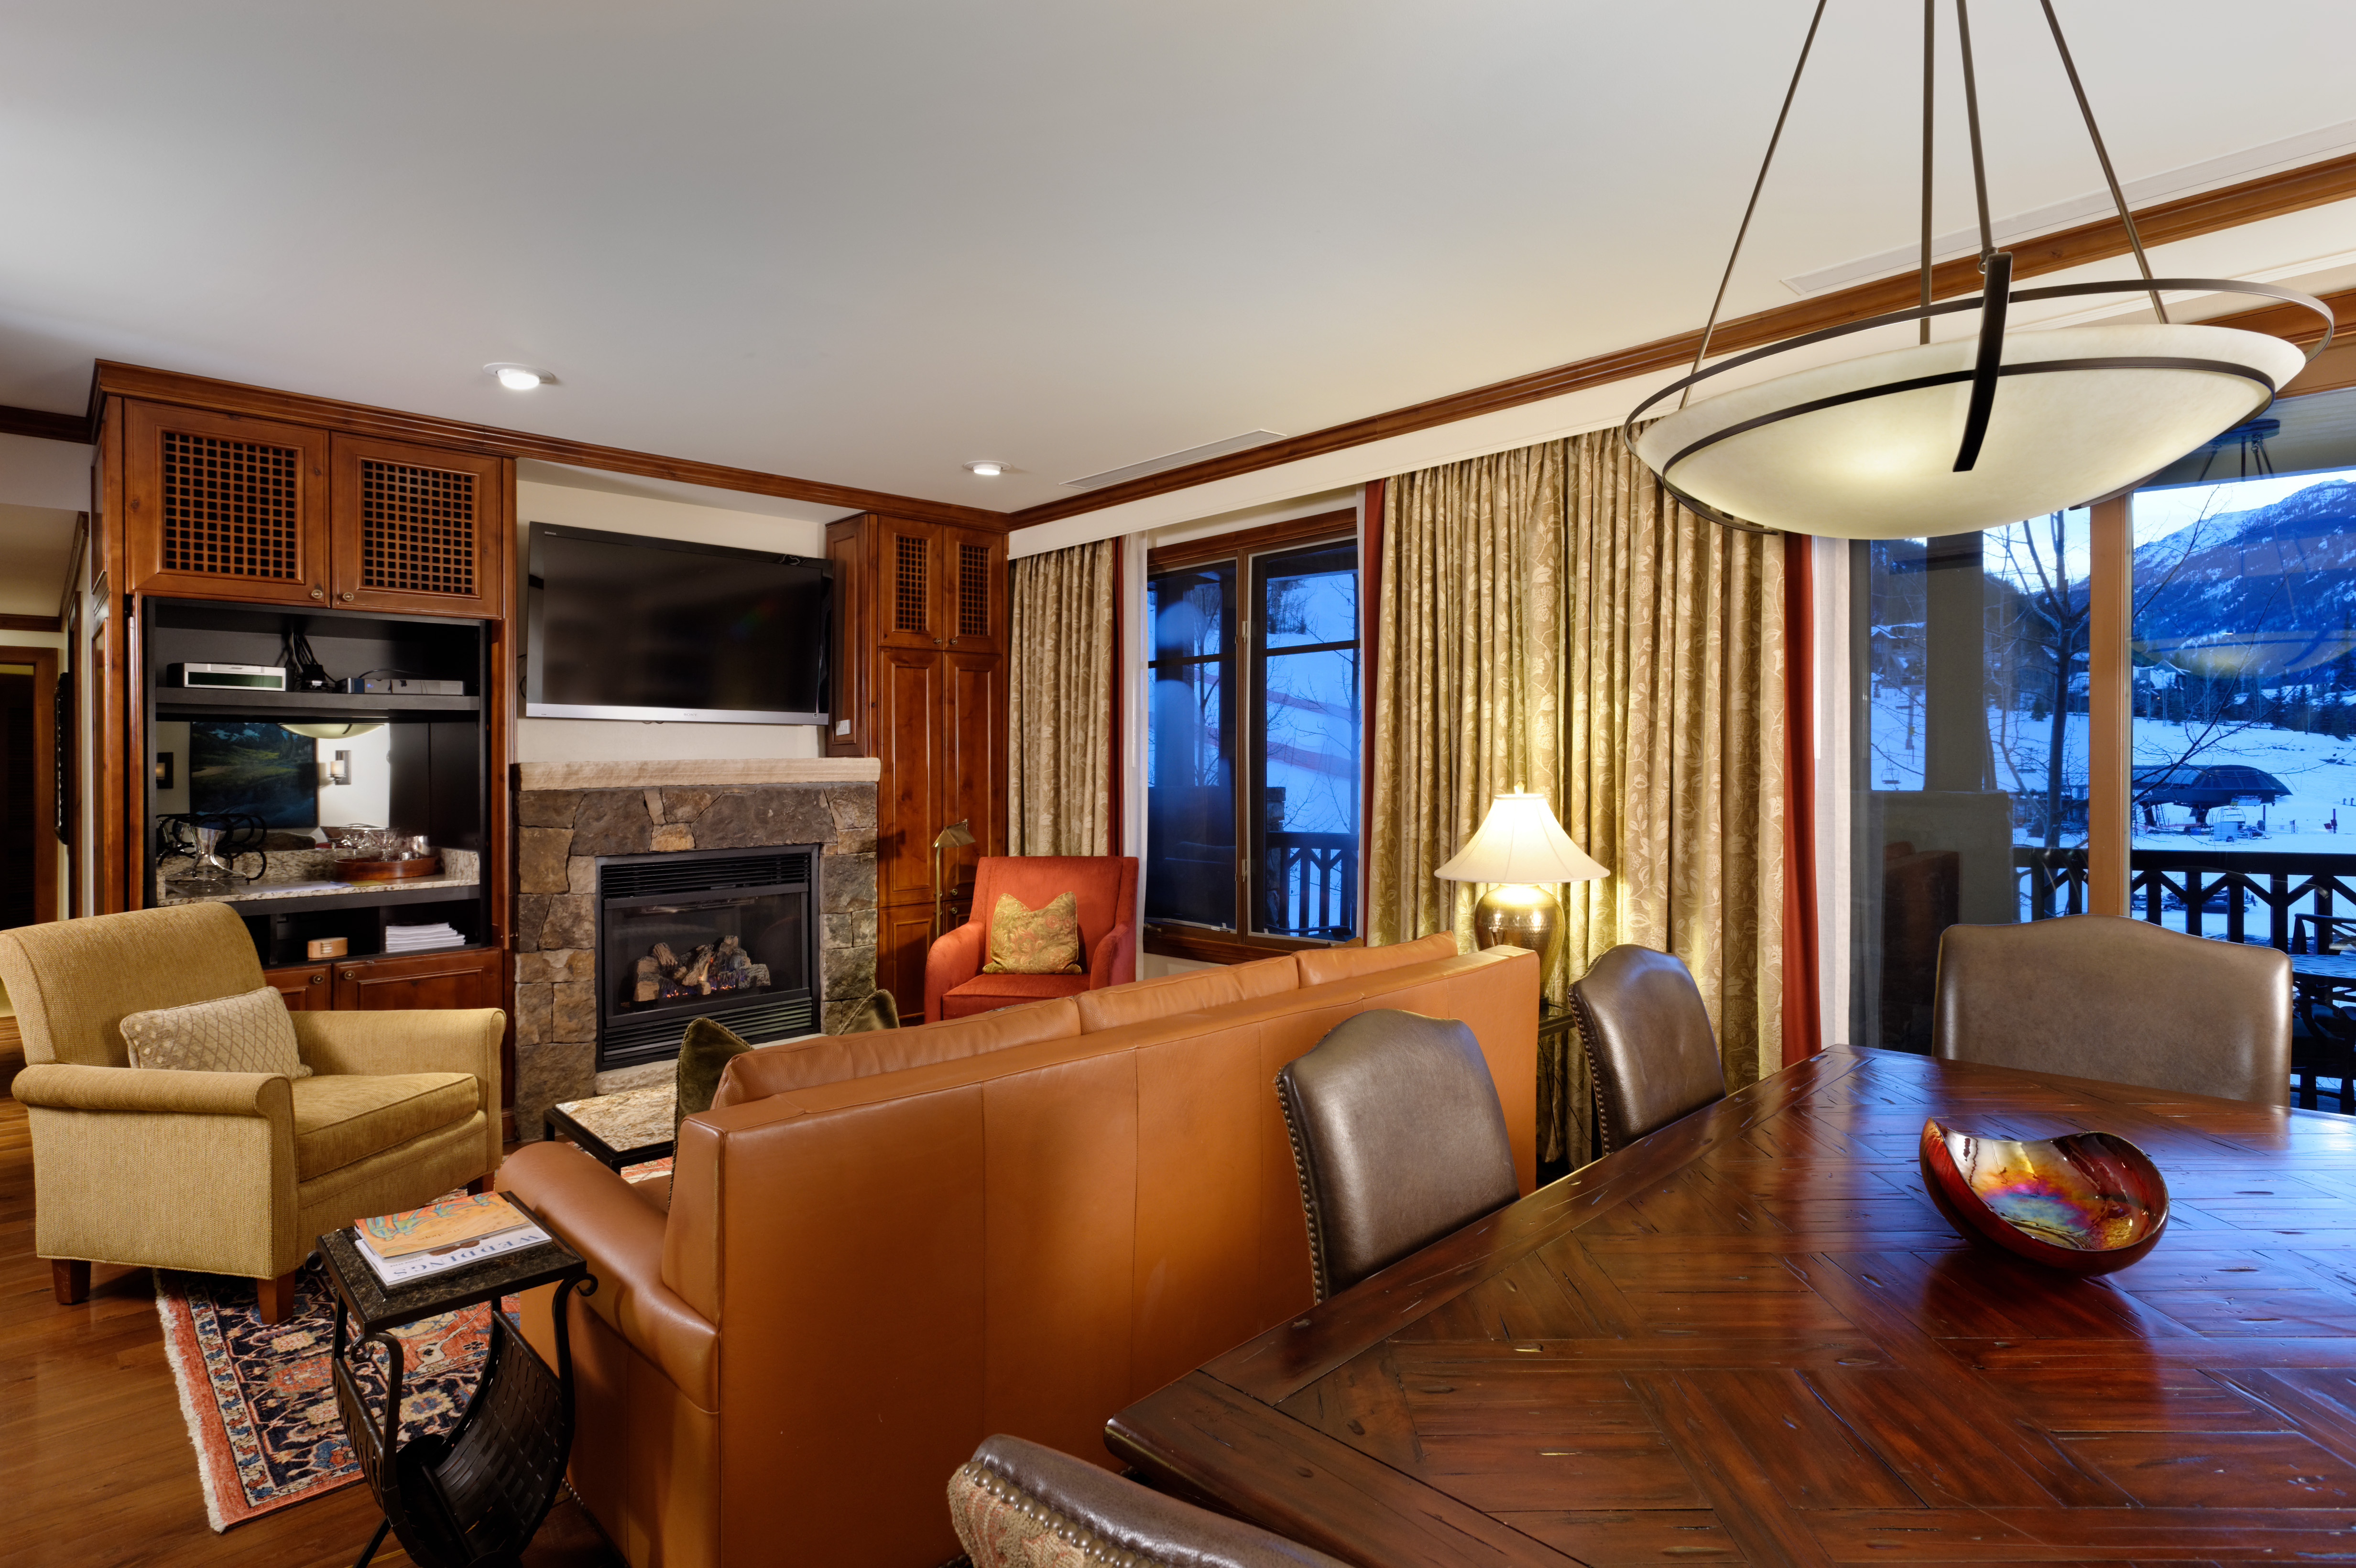 0075 Prospector Road, 8103, Summer Interest 10, Ritz-Carlton Club Fractional Condo Interest Aspen Photo 3